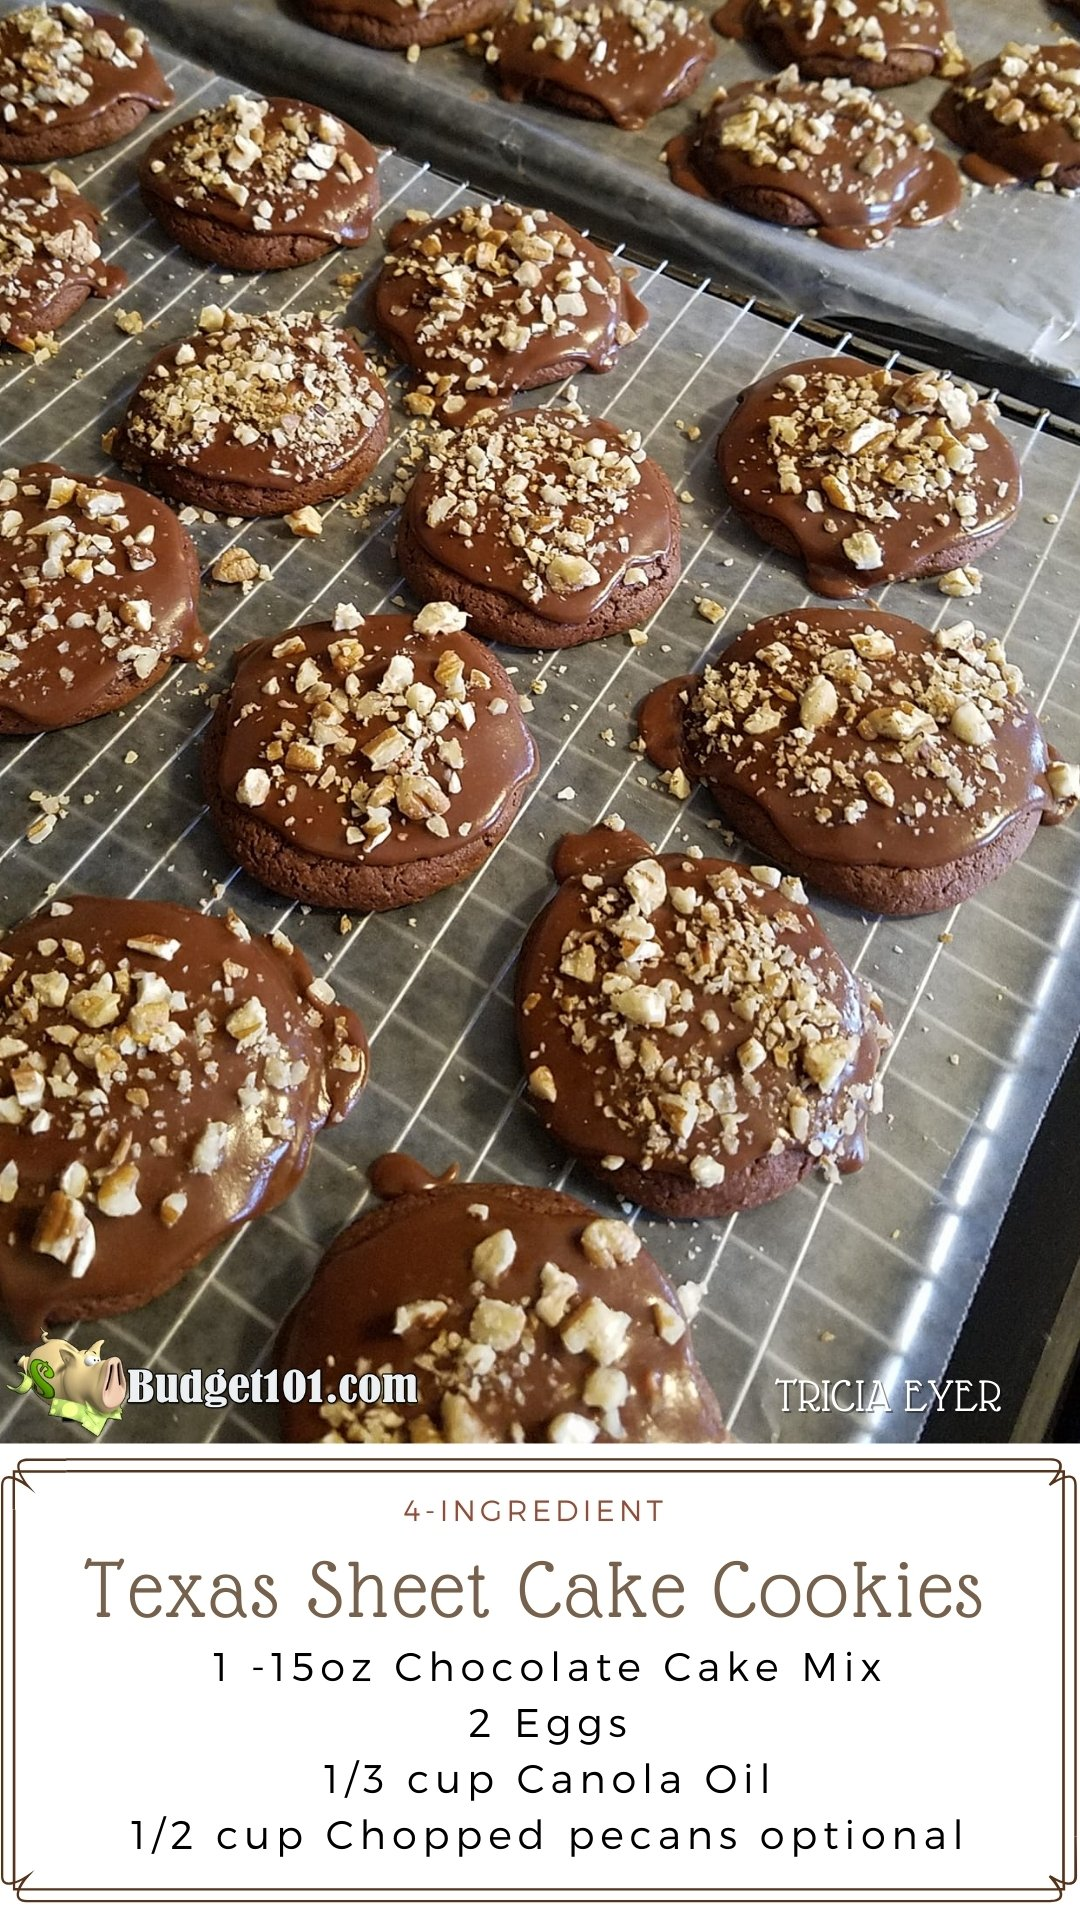 Texas Sheetcake Cookies are reminiscent in flavor of a delicious Chocolate Texas sheet cake glazed in decadent chocolate icing and finished with chopped pecans. #Texas #CakeMixRecipes #Budget101 #chocolatecookierecipes